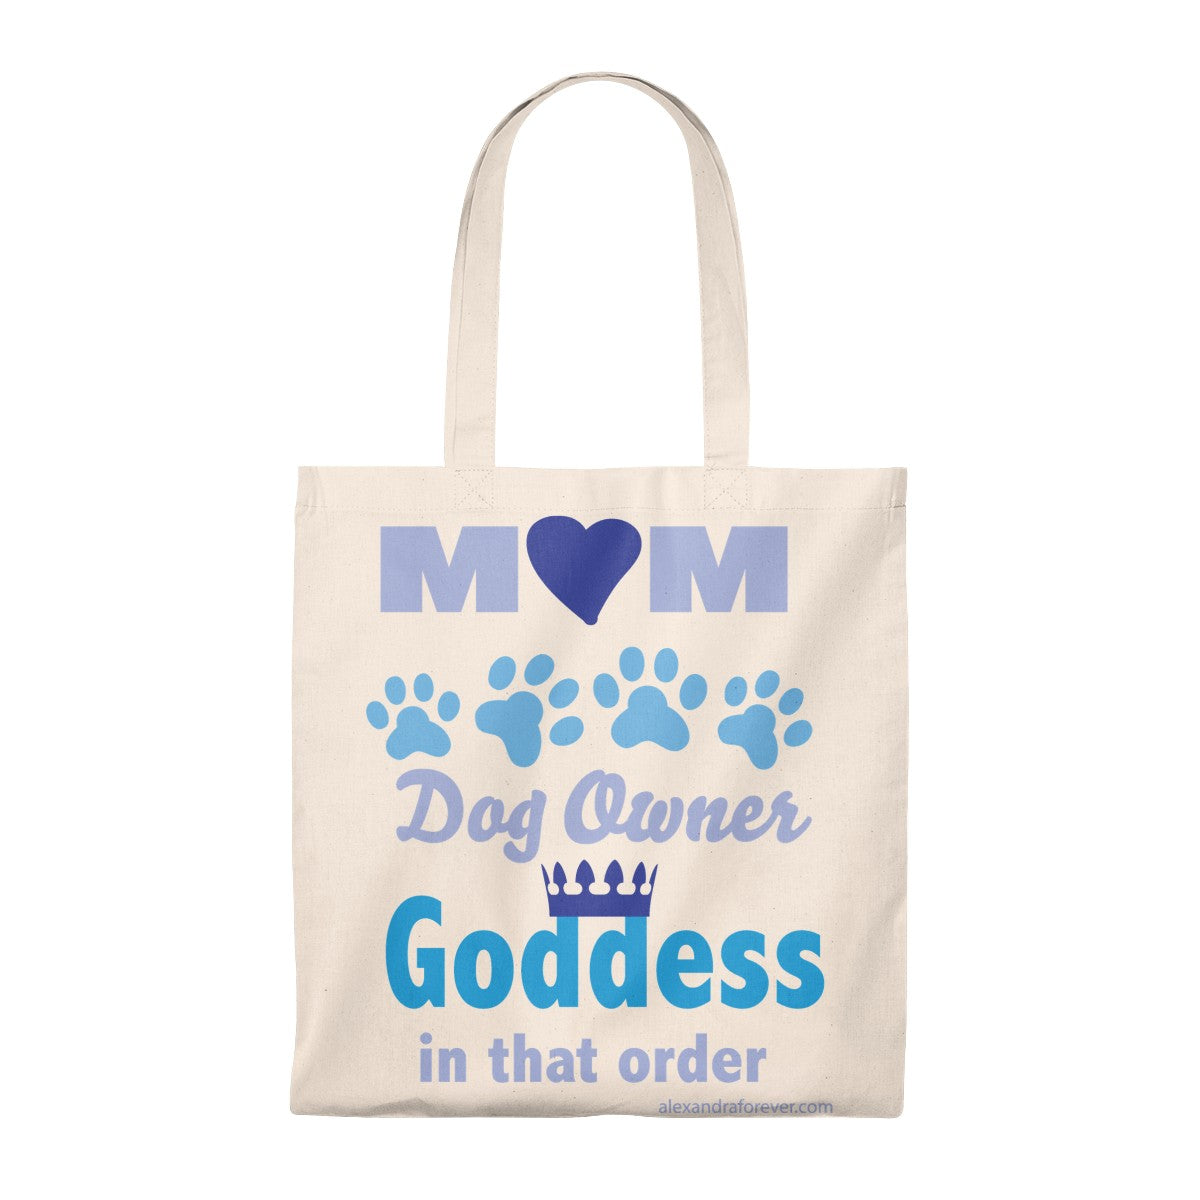 We know Mom is a Goddess - Tote Bag - Vintage